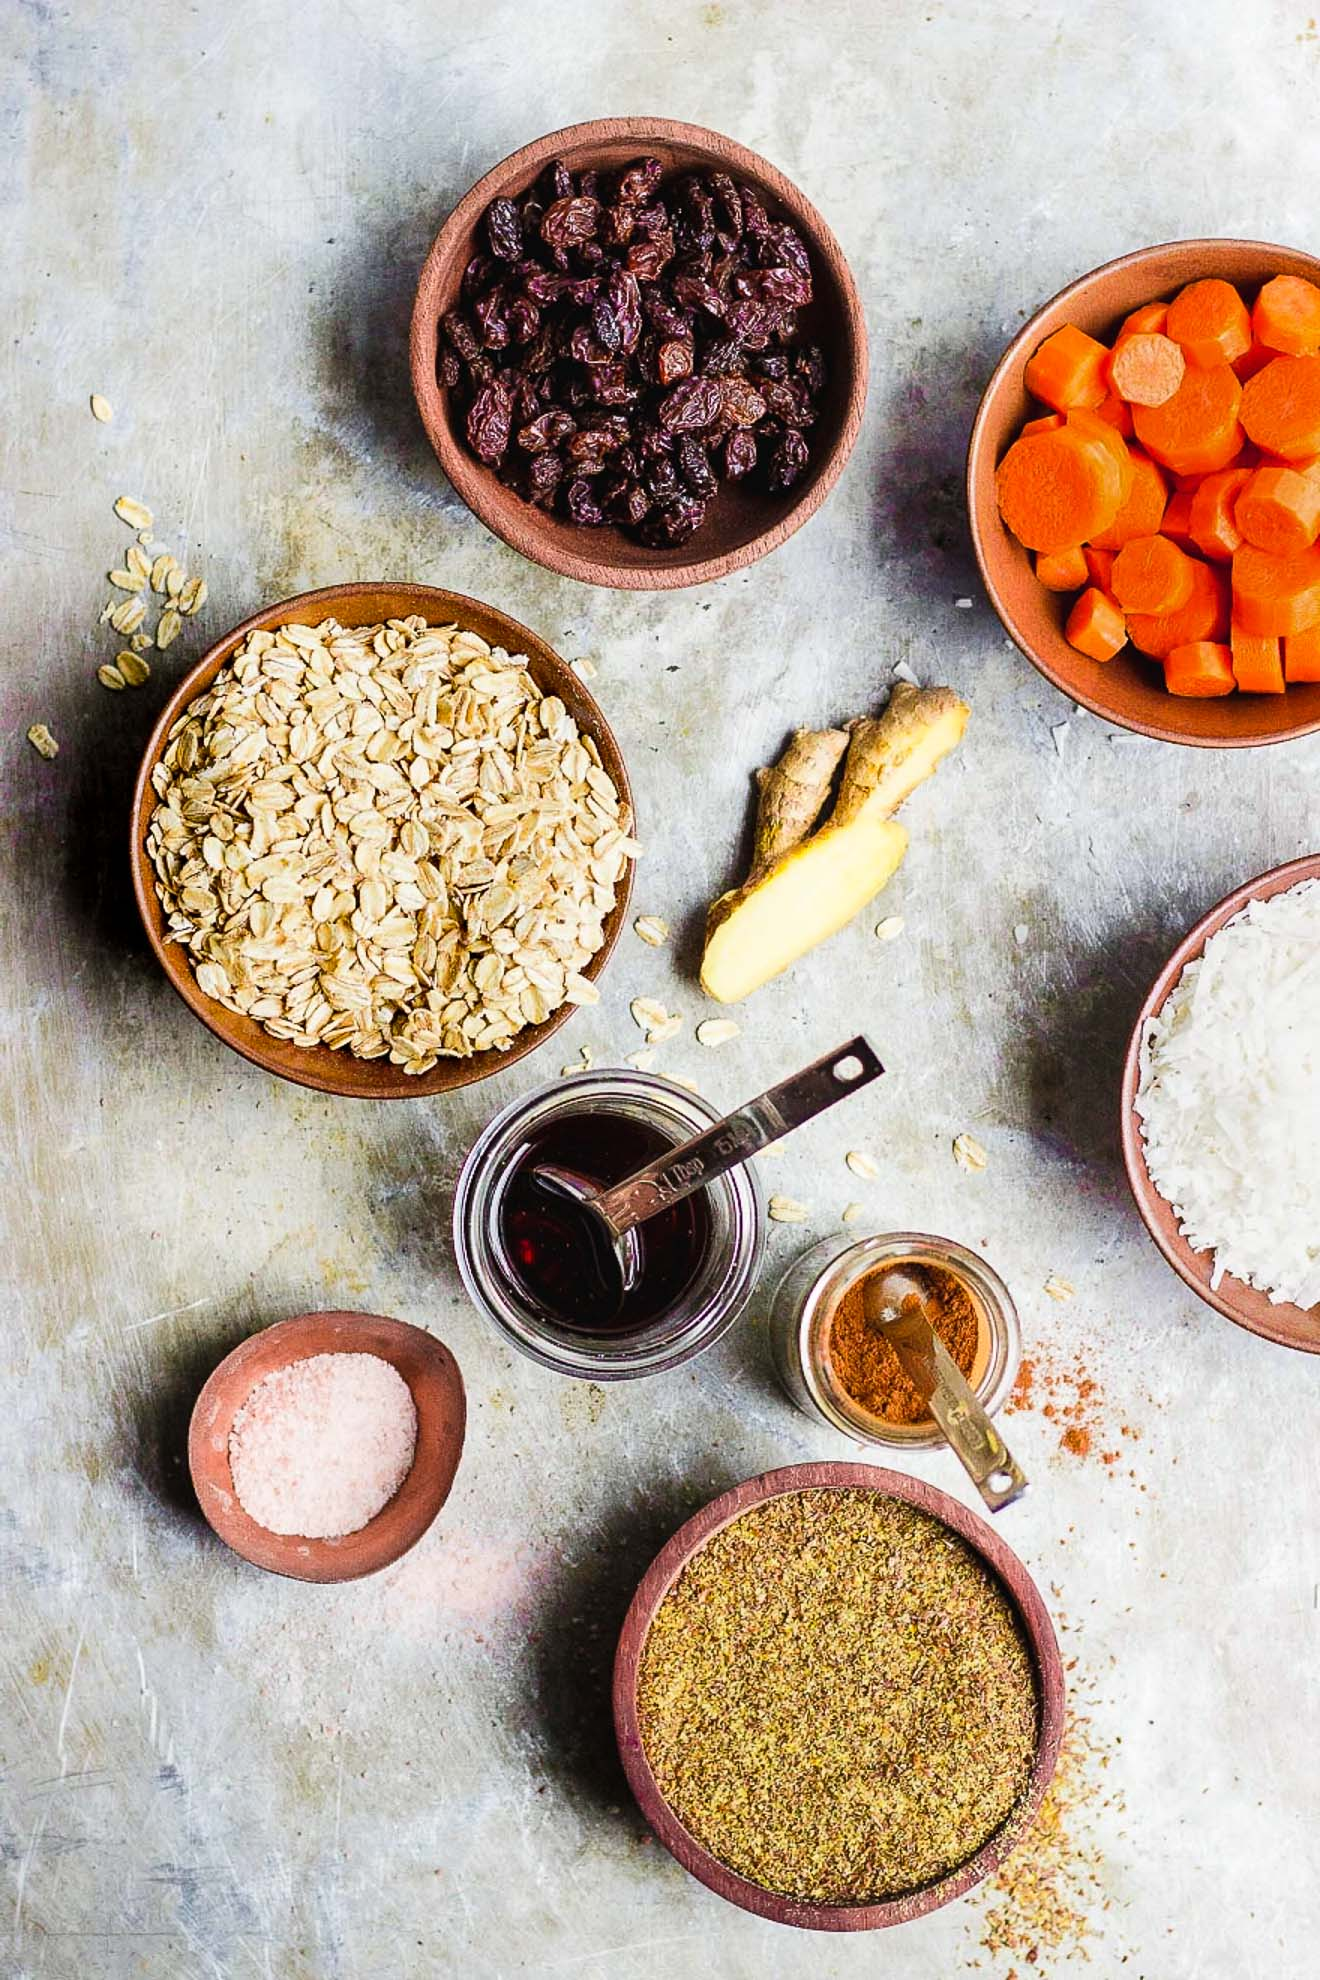 Carrot Cake Energy Balls with Flax Seed + Ginger | Vegan carrot cake energy balls with flax seed for plant-based protein and fresh ginger. An easy, portable energy ball breakfast and snack.